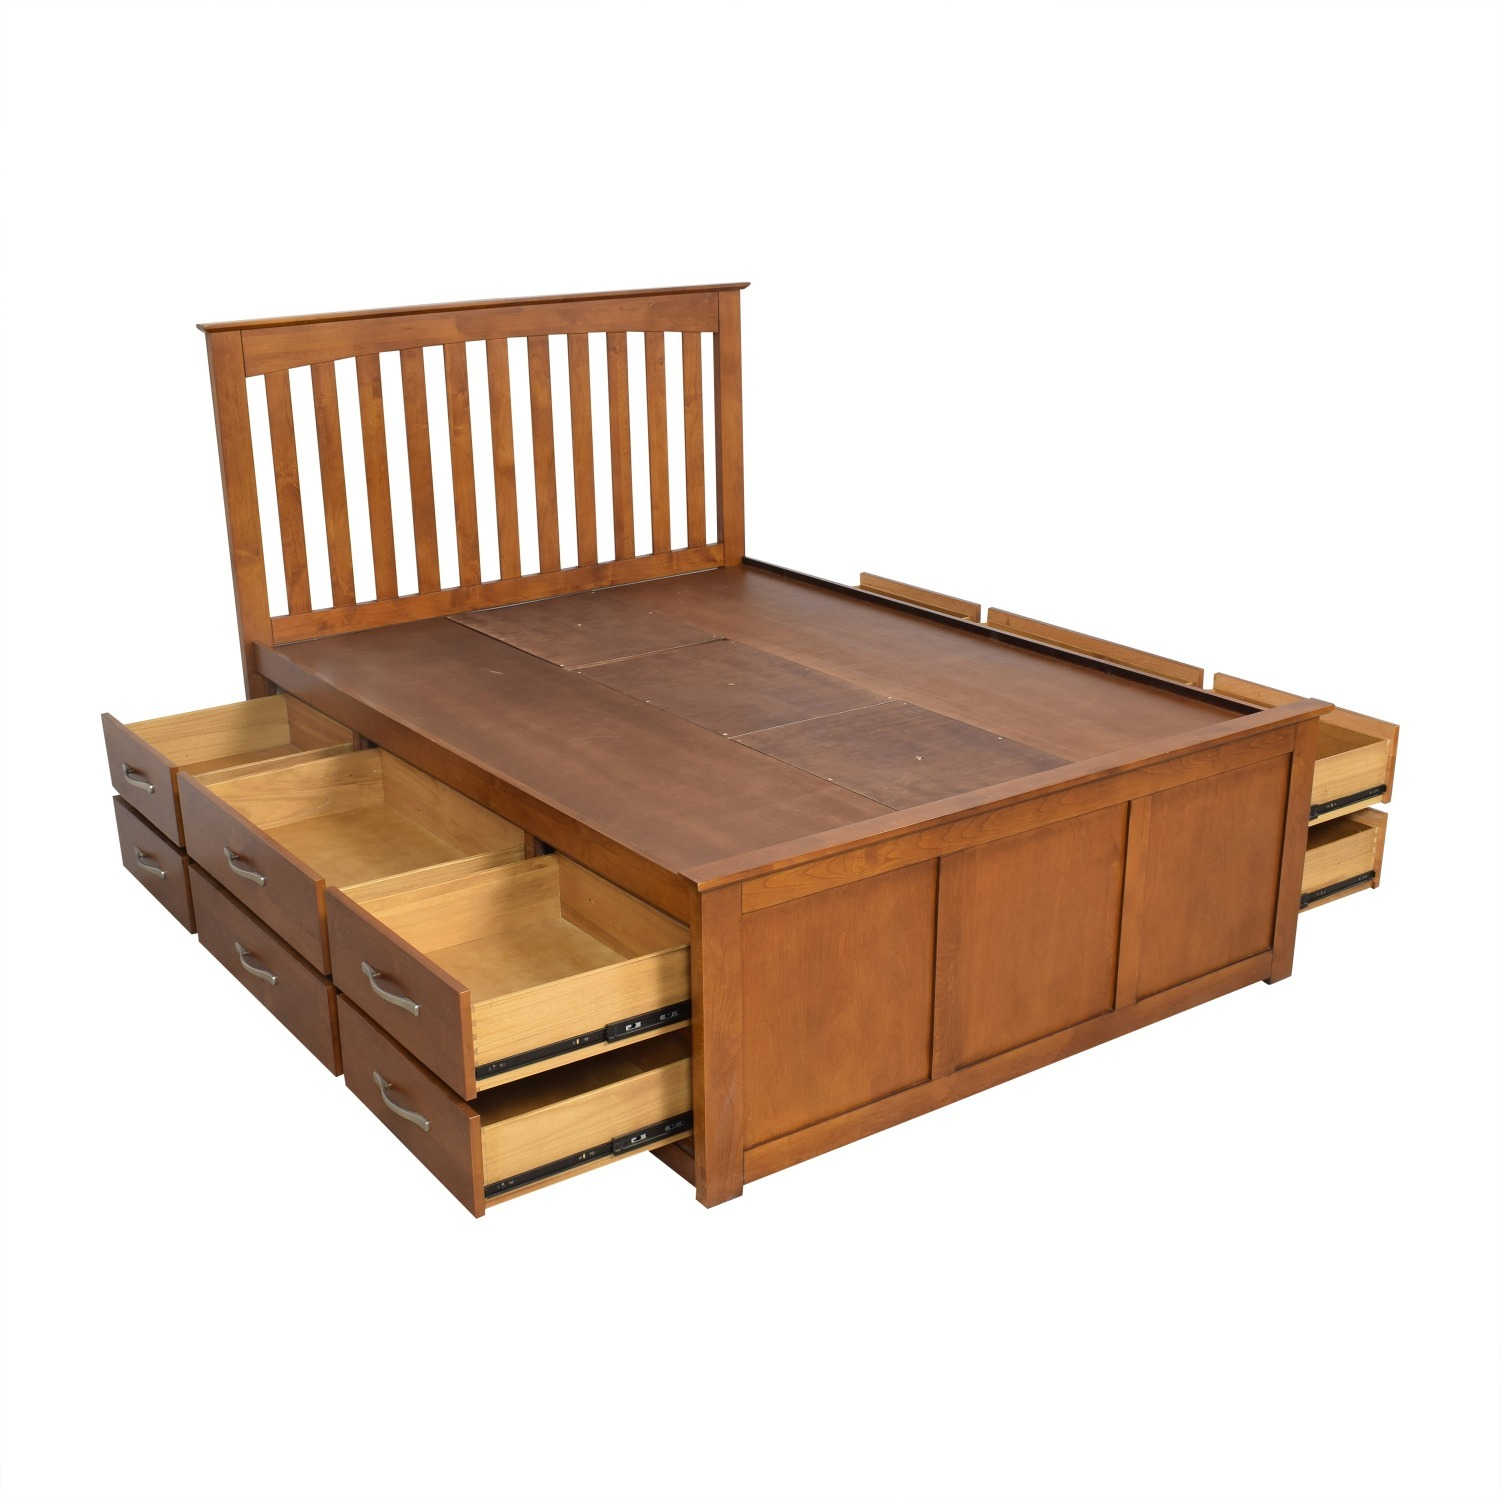 Raymour & Flanigan King Size Bed - image-1